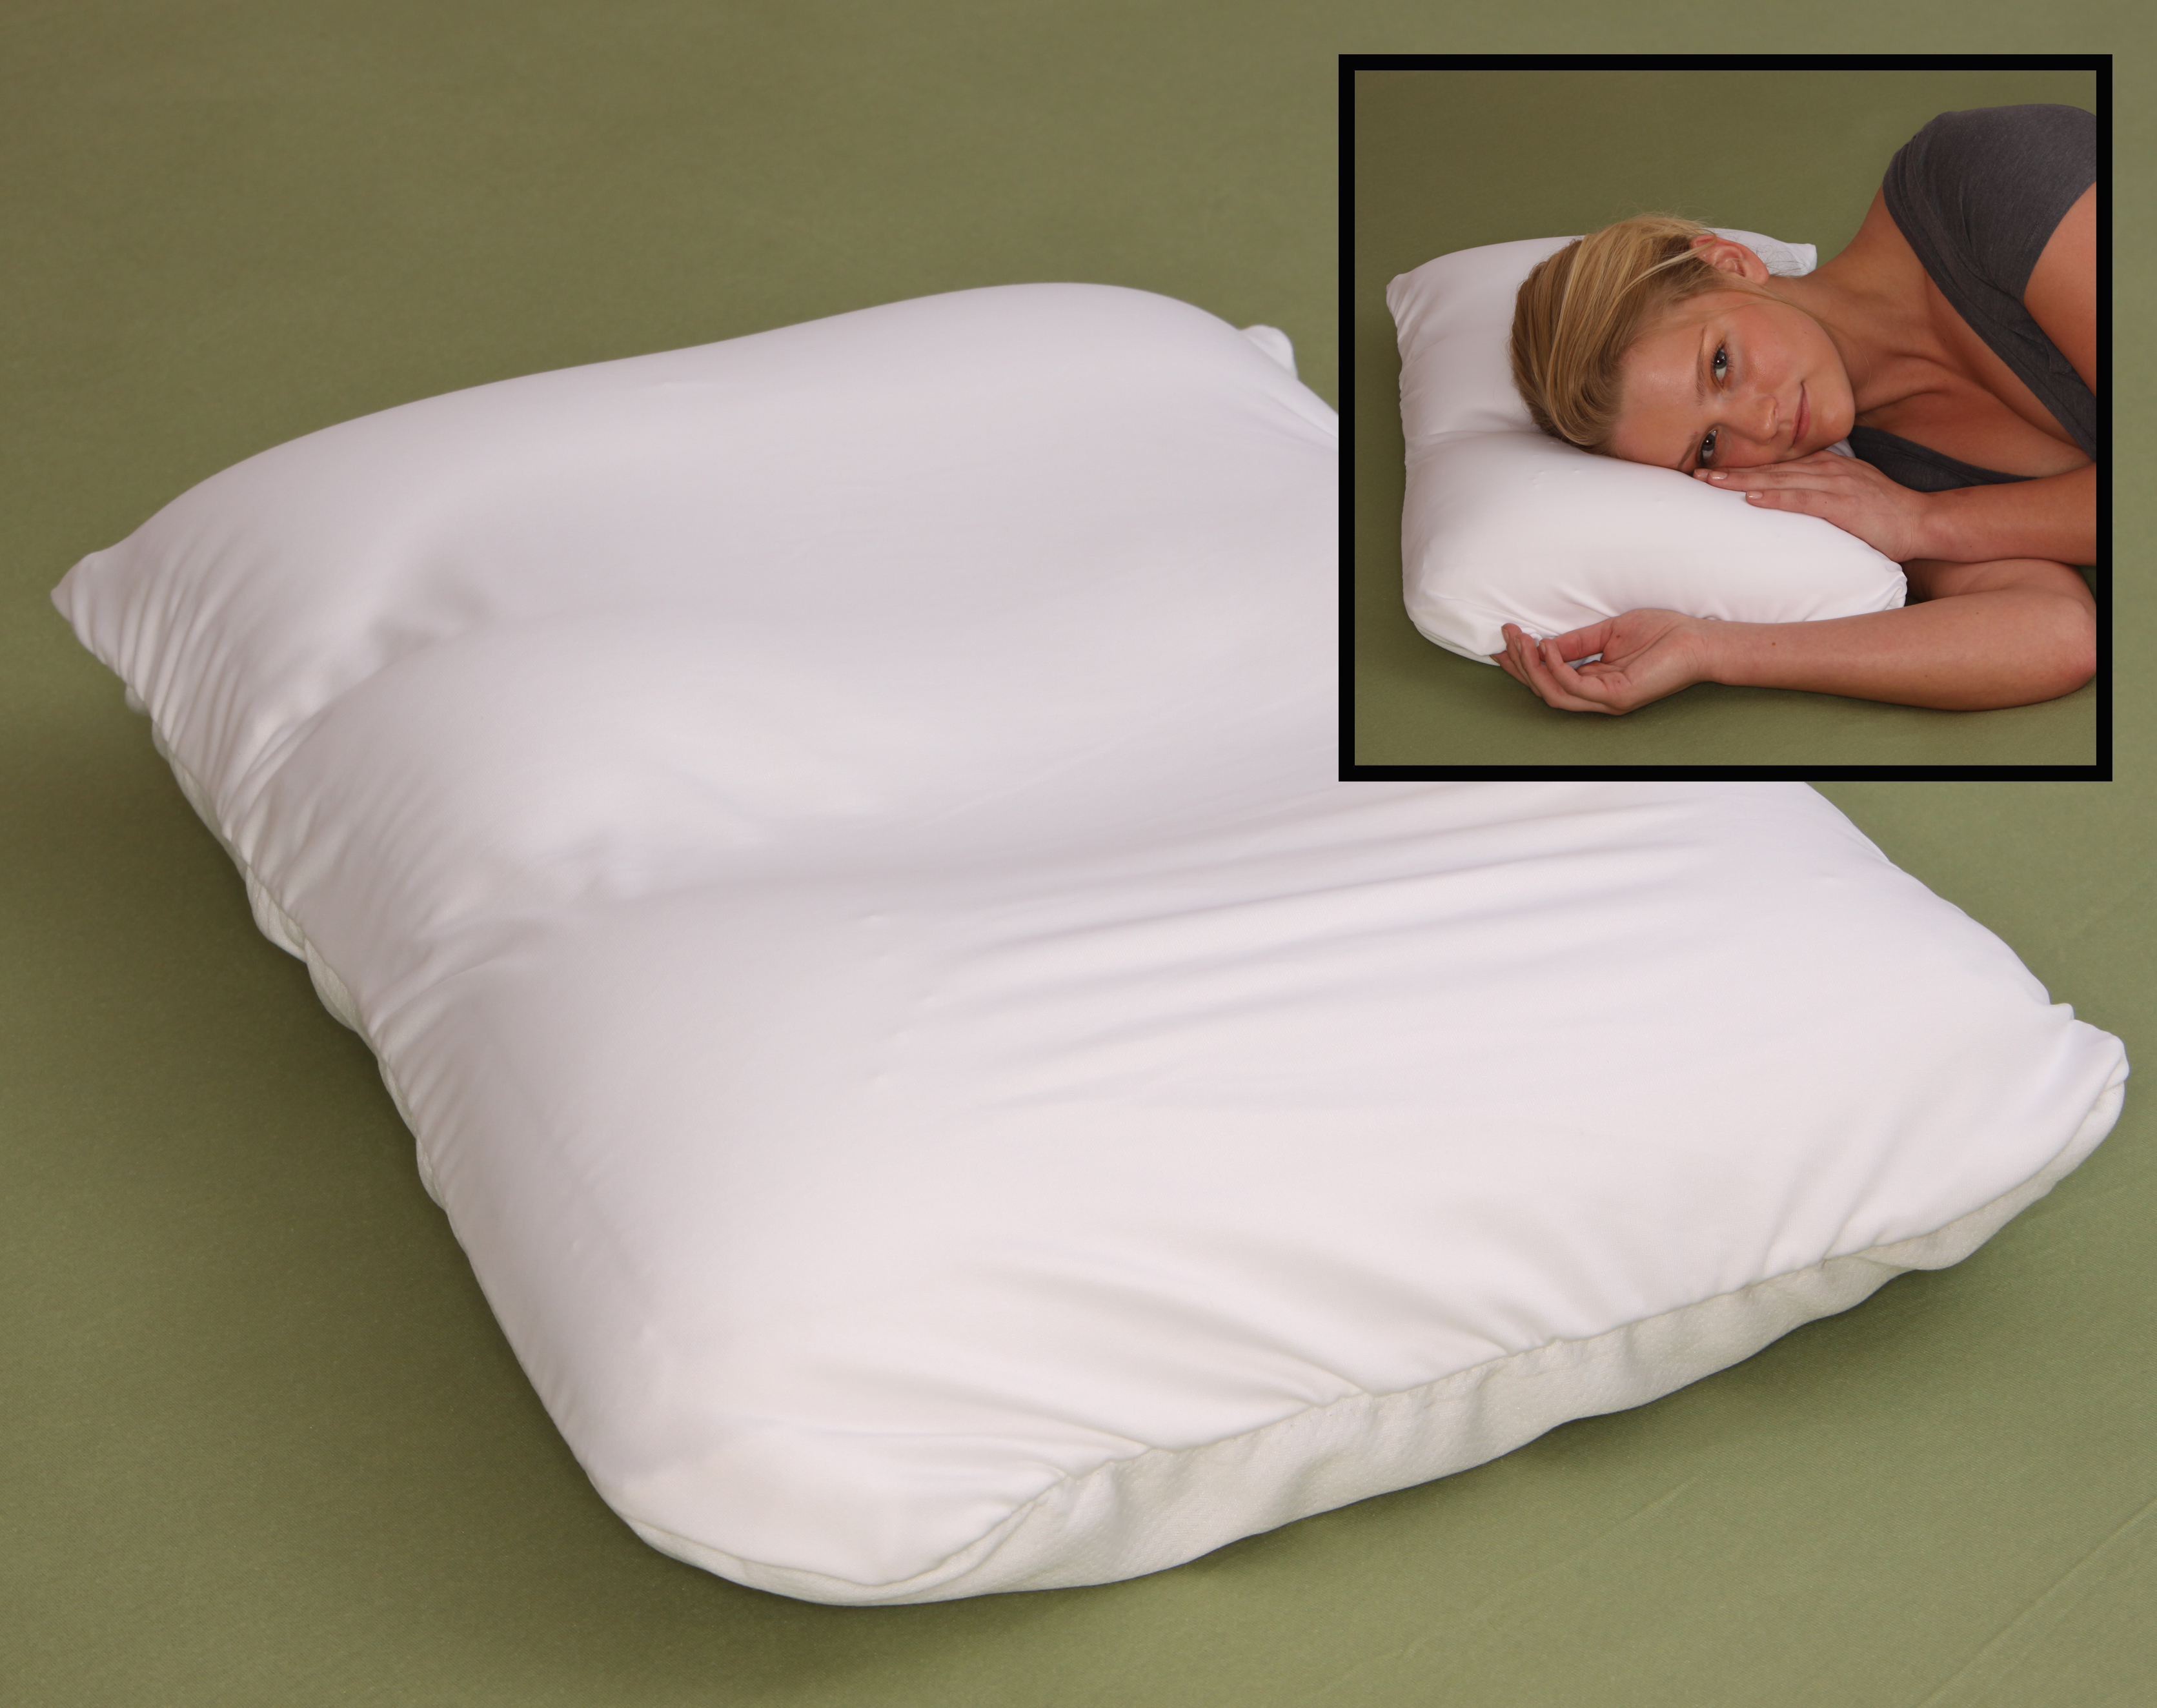 microbead pillow most comfortable air micro bead cloud pillows squishy yet firm